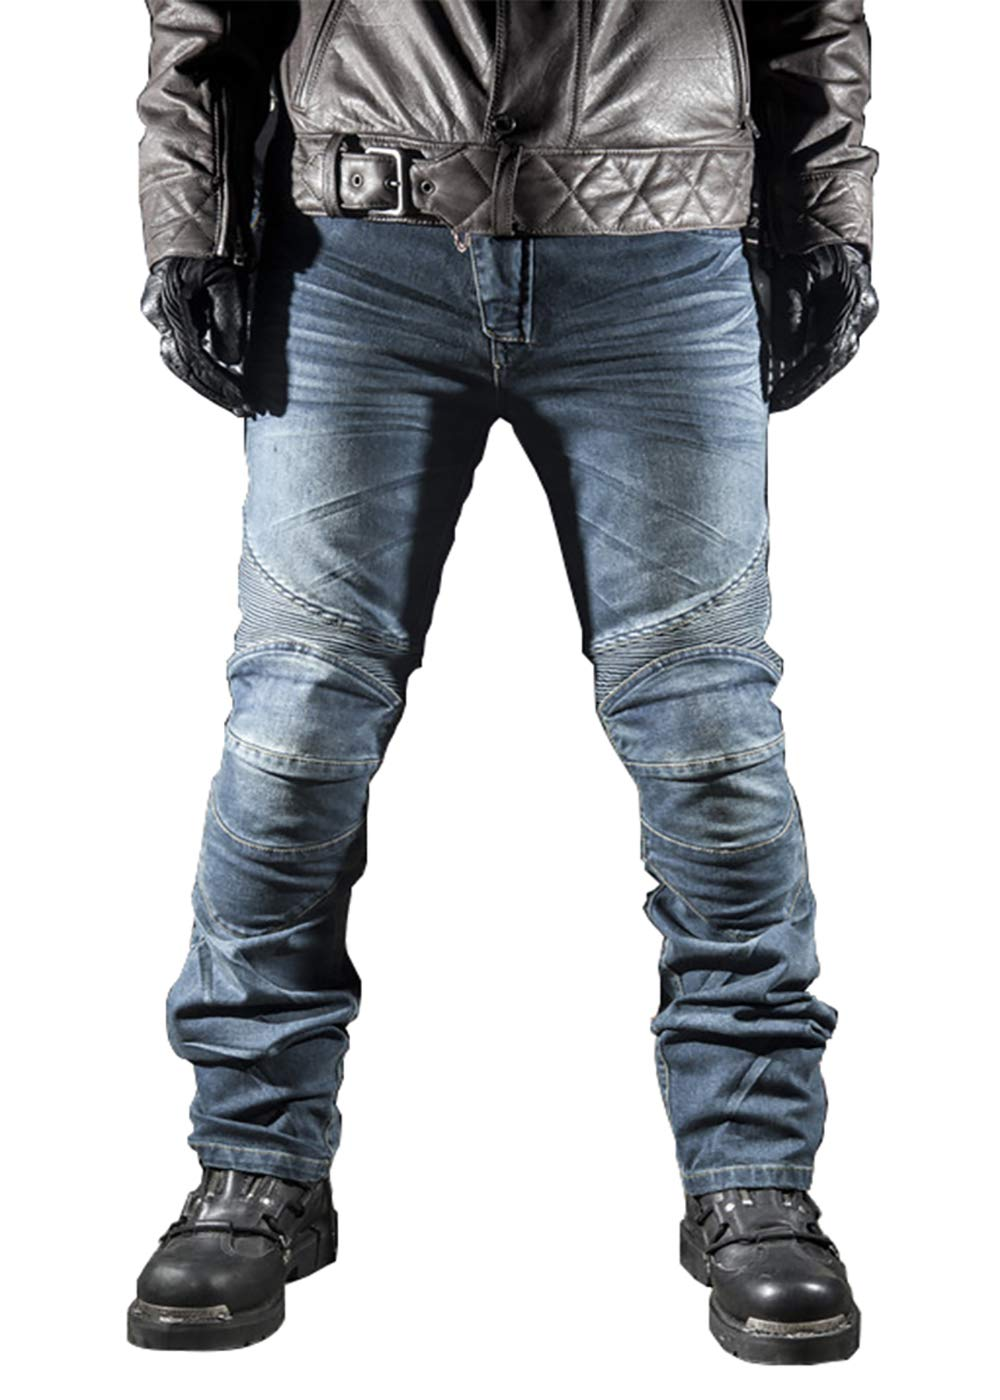 WildBee Off-road Street Motorbike Racing Jeans Black Trousers with removable Protective Pads